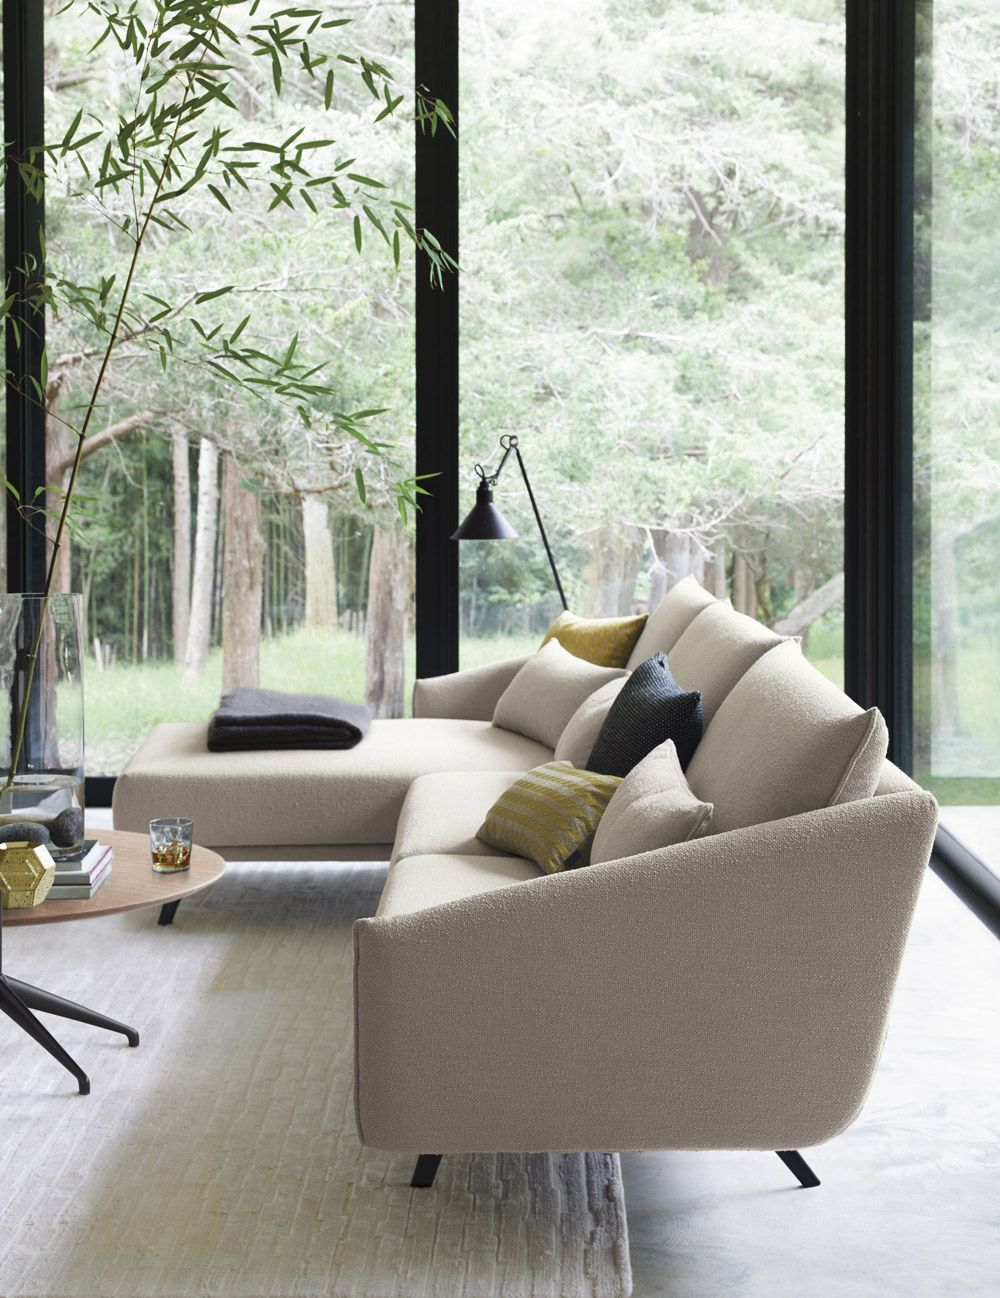 The Weekend Is The Best Time To Lounge On The STUA Costura Sofa  Chaiselounge. A Jon Gasca Design. COSTURA: Www.stua.com/design/costura